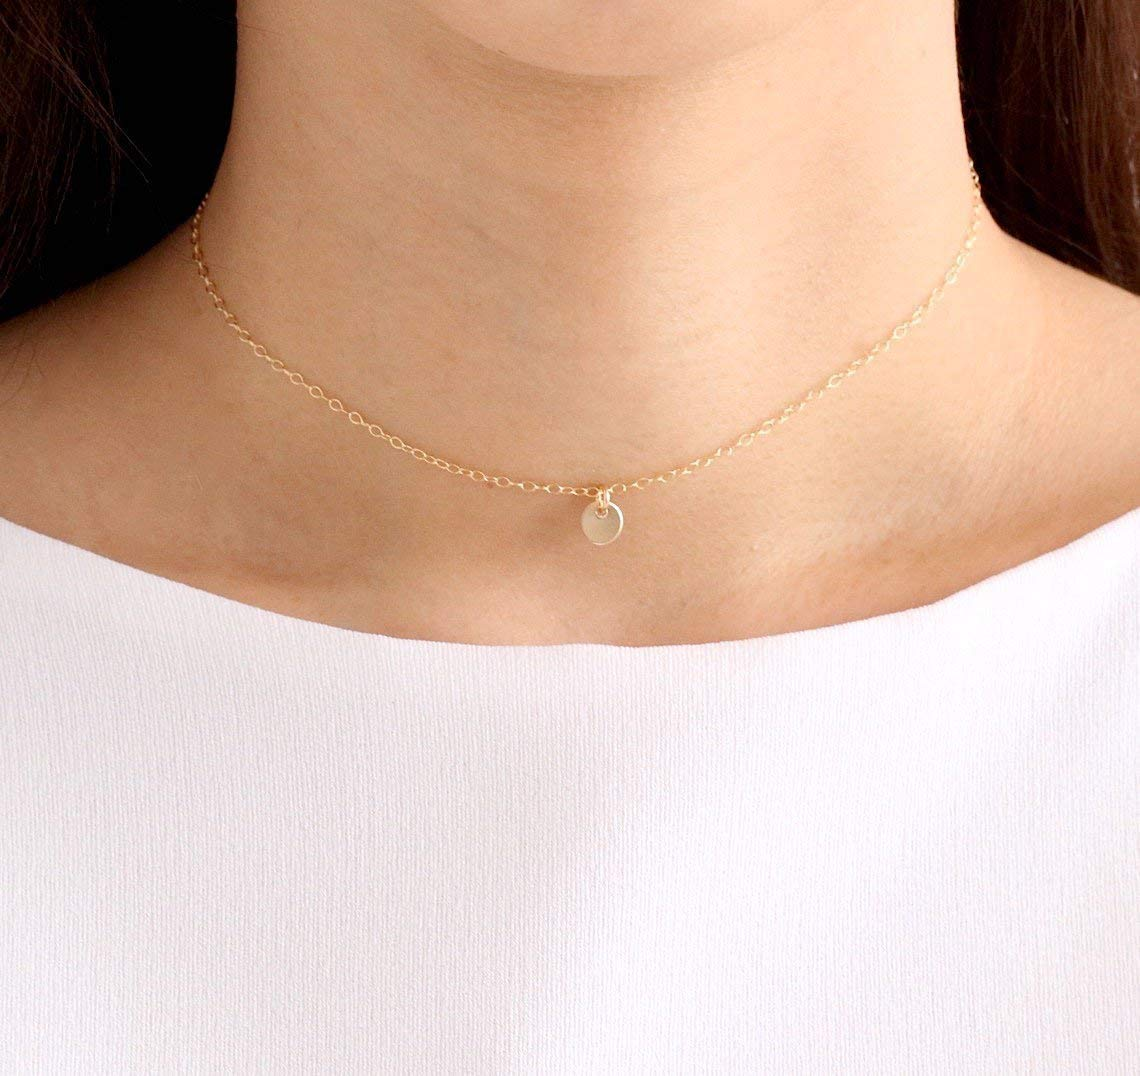 14K Gold filled Disc Choker, Sterling Silver Disc Choker, Disc Choker necklace, Tiny Disc Choker, Minimalist Necklace, Layered Necklace, Gift